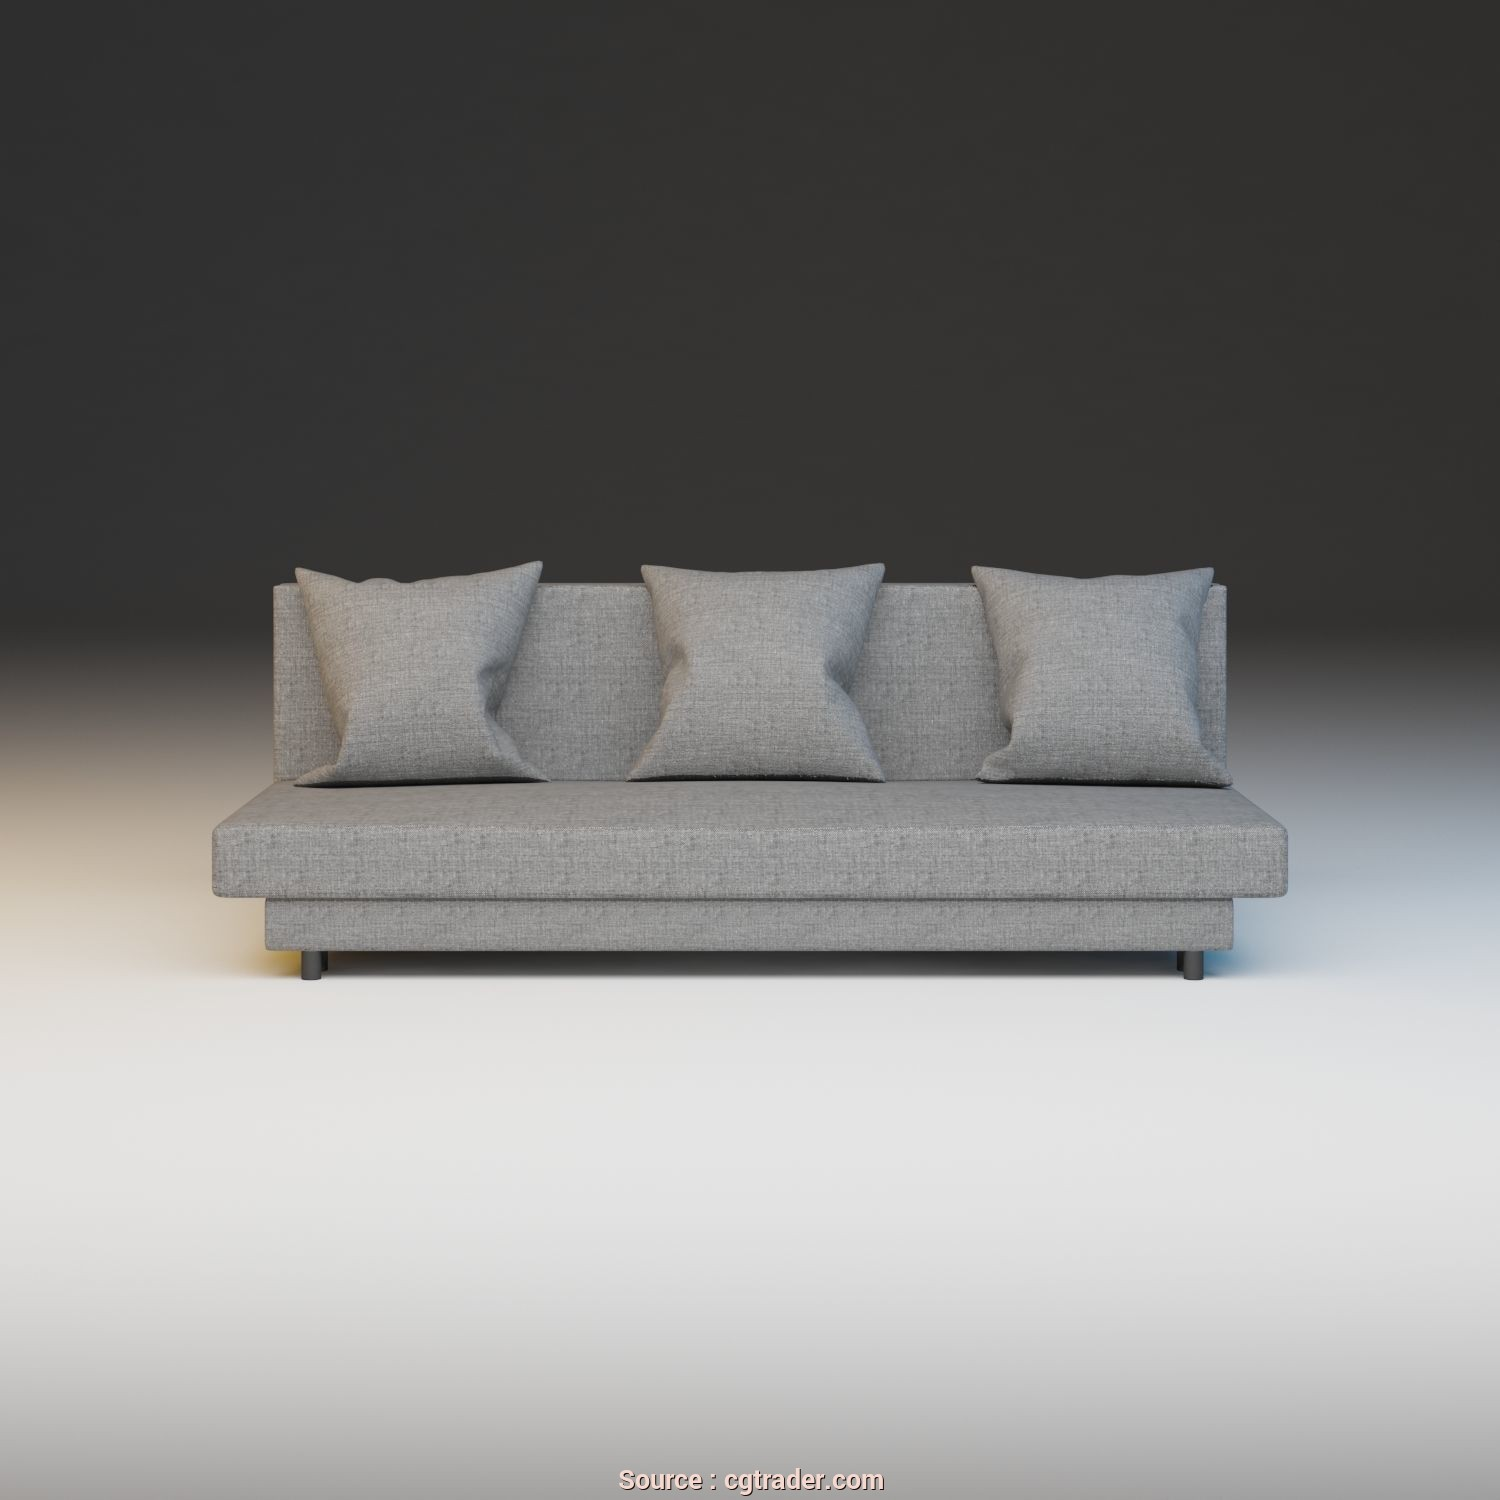 Asarum Ikea Review, Bello ... Ikea, Asarum Sofa 3D Model, Obj, 3Ds, 3